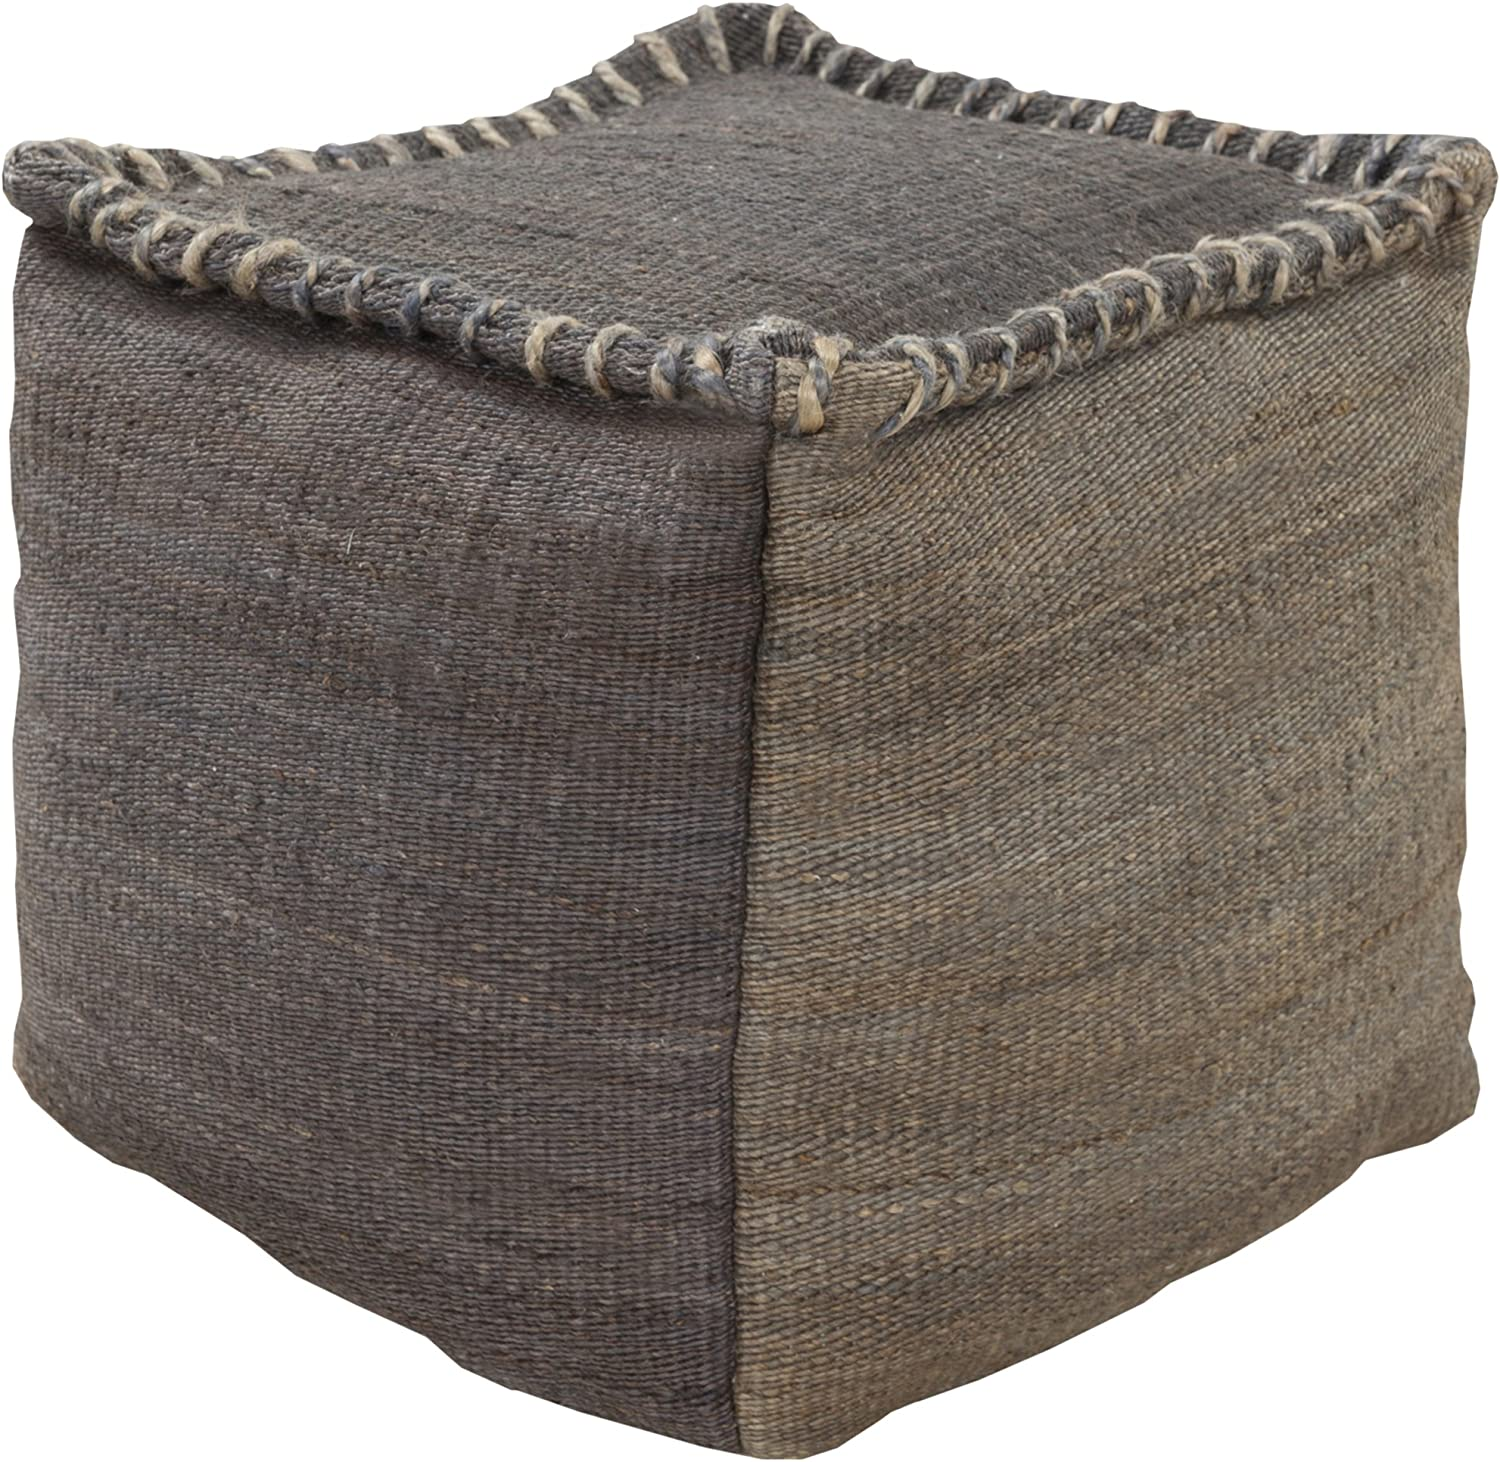 Amazon Com Surya 100 Percent Jute Pouf 18 Inch By 18 Inch By 18 Inch Charcoal Gray Furniture Decor